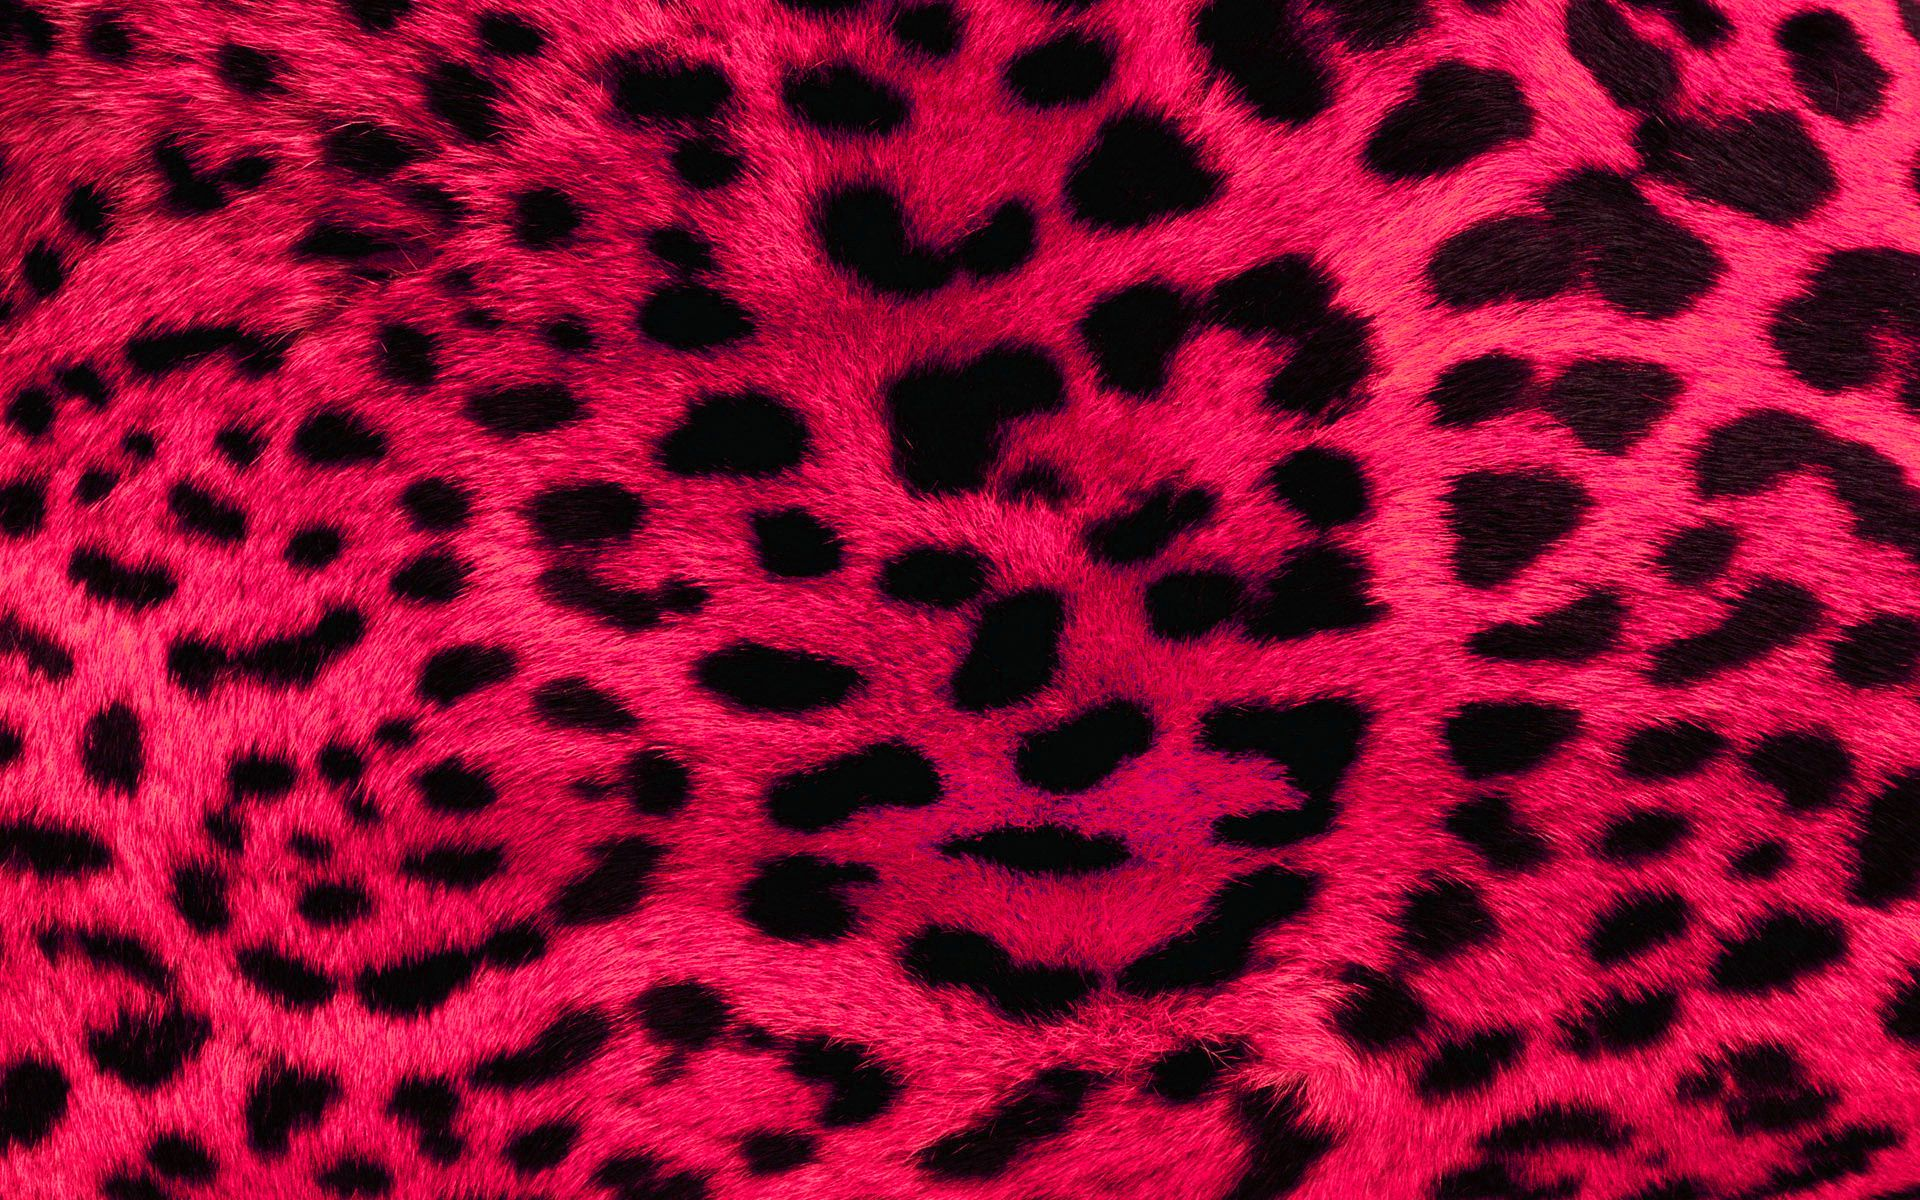 Cheetah Print Wallpapers Beautiful Zebra Print Hd Wallpapers